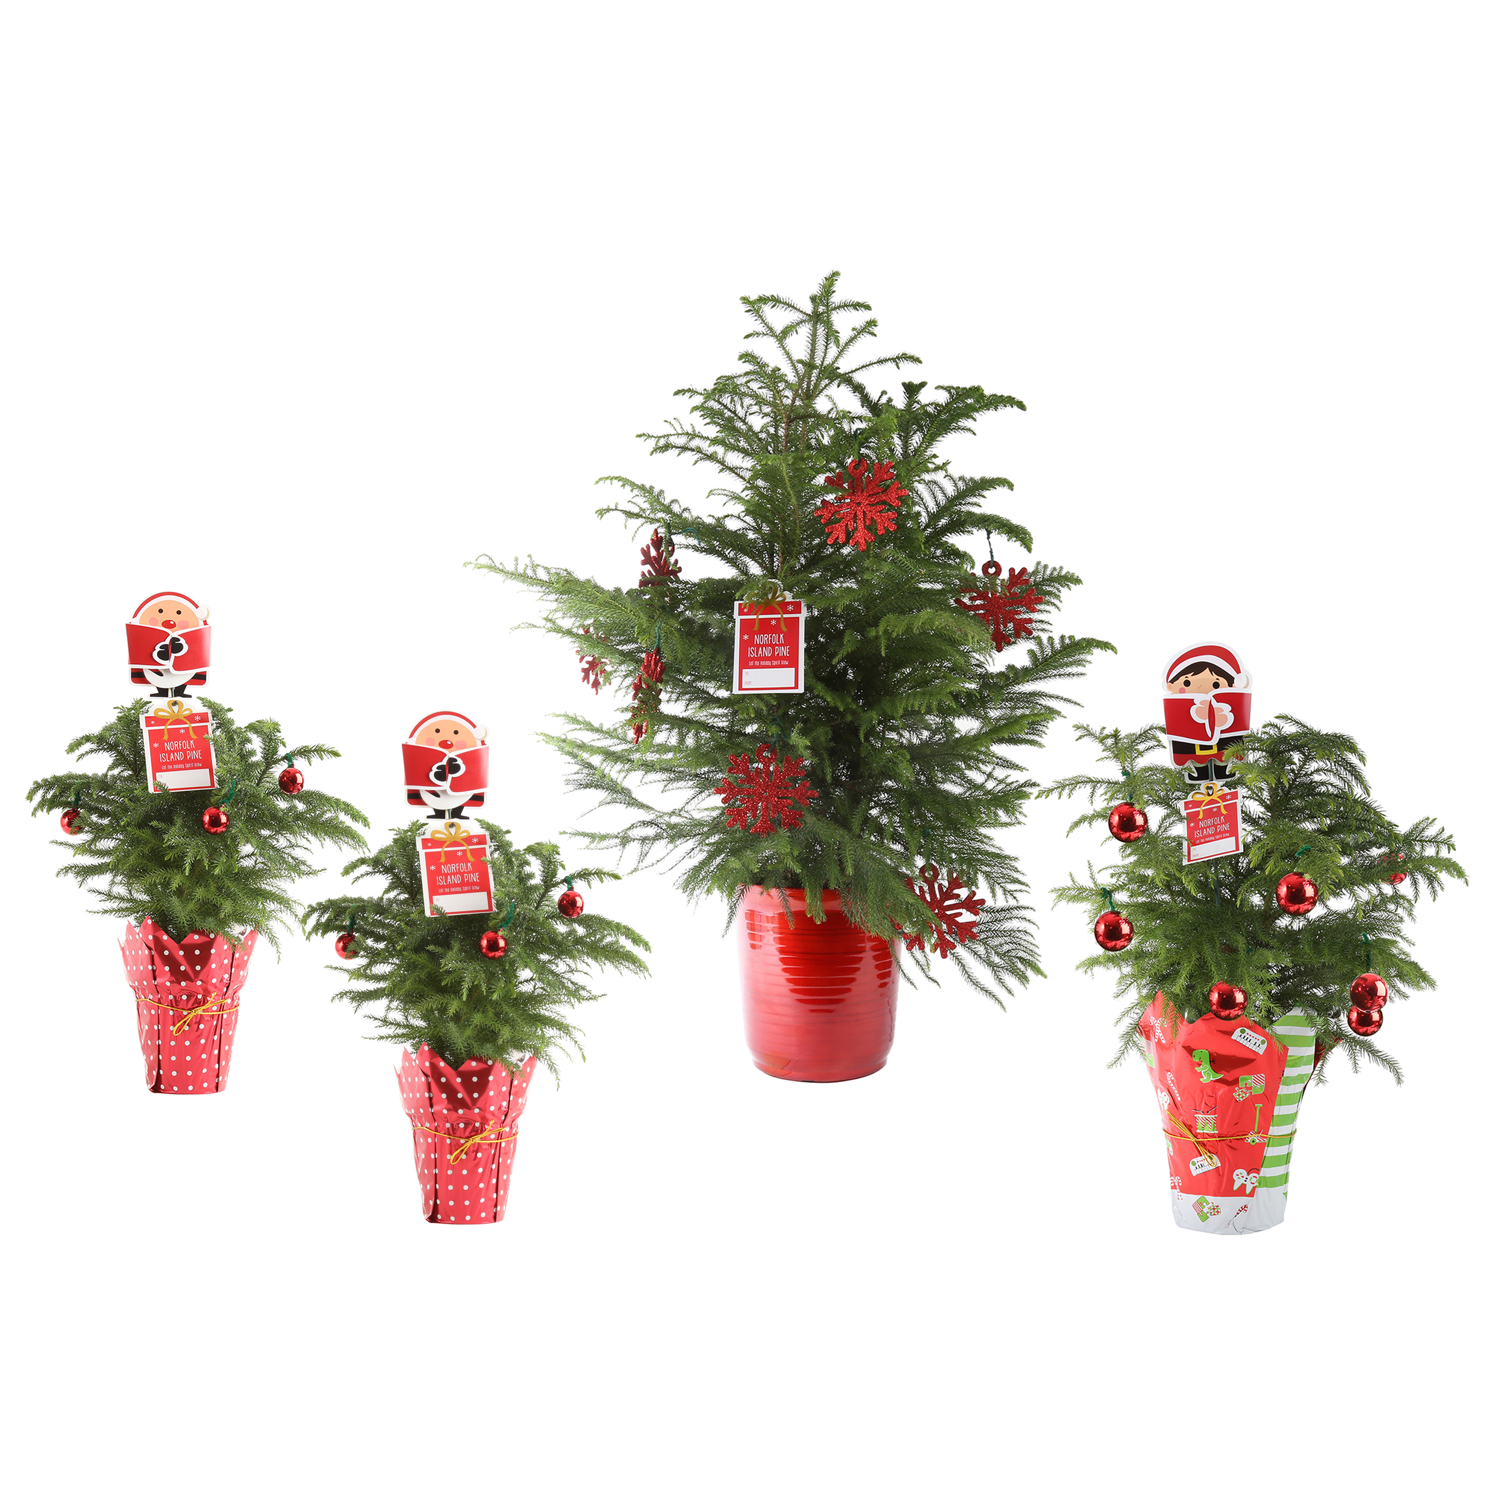 Christmas Trees Norfolk: Amazon.com : Costa Farms Live Norfolk Island Pine (Indoor